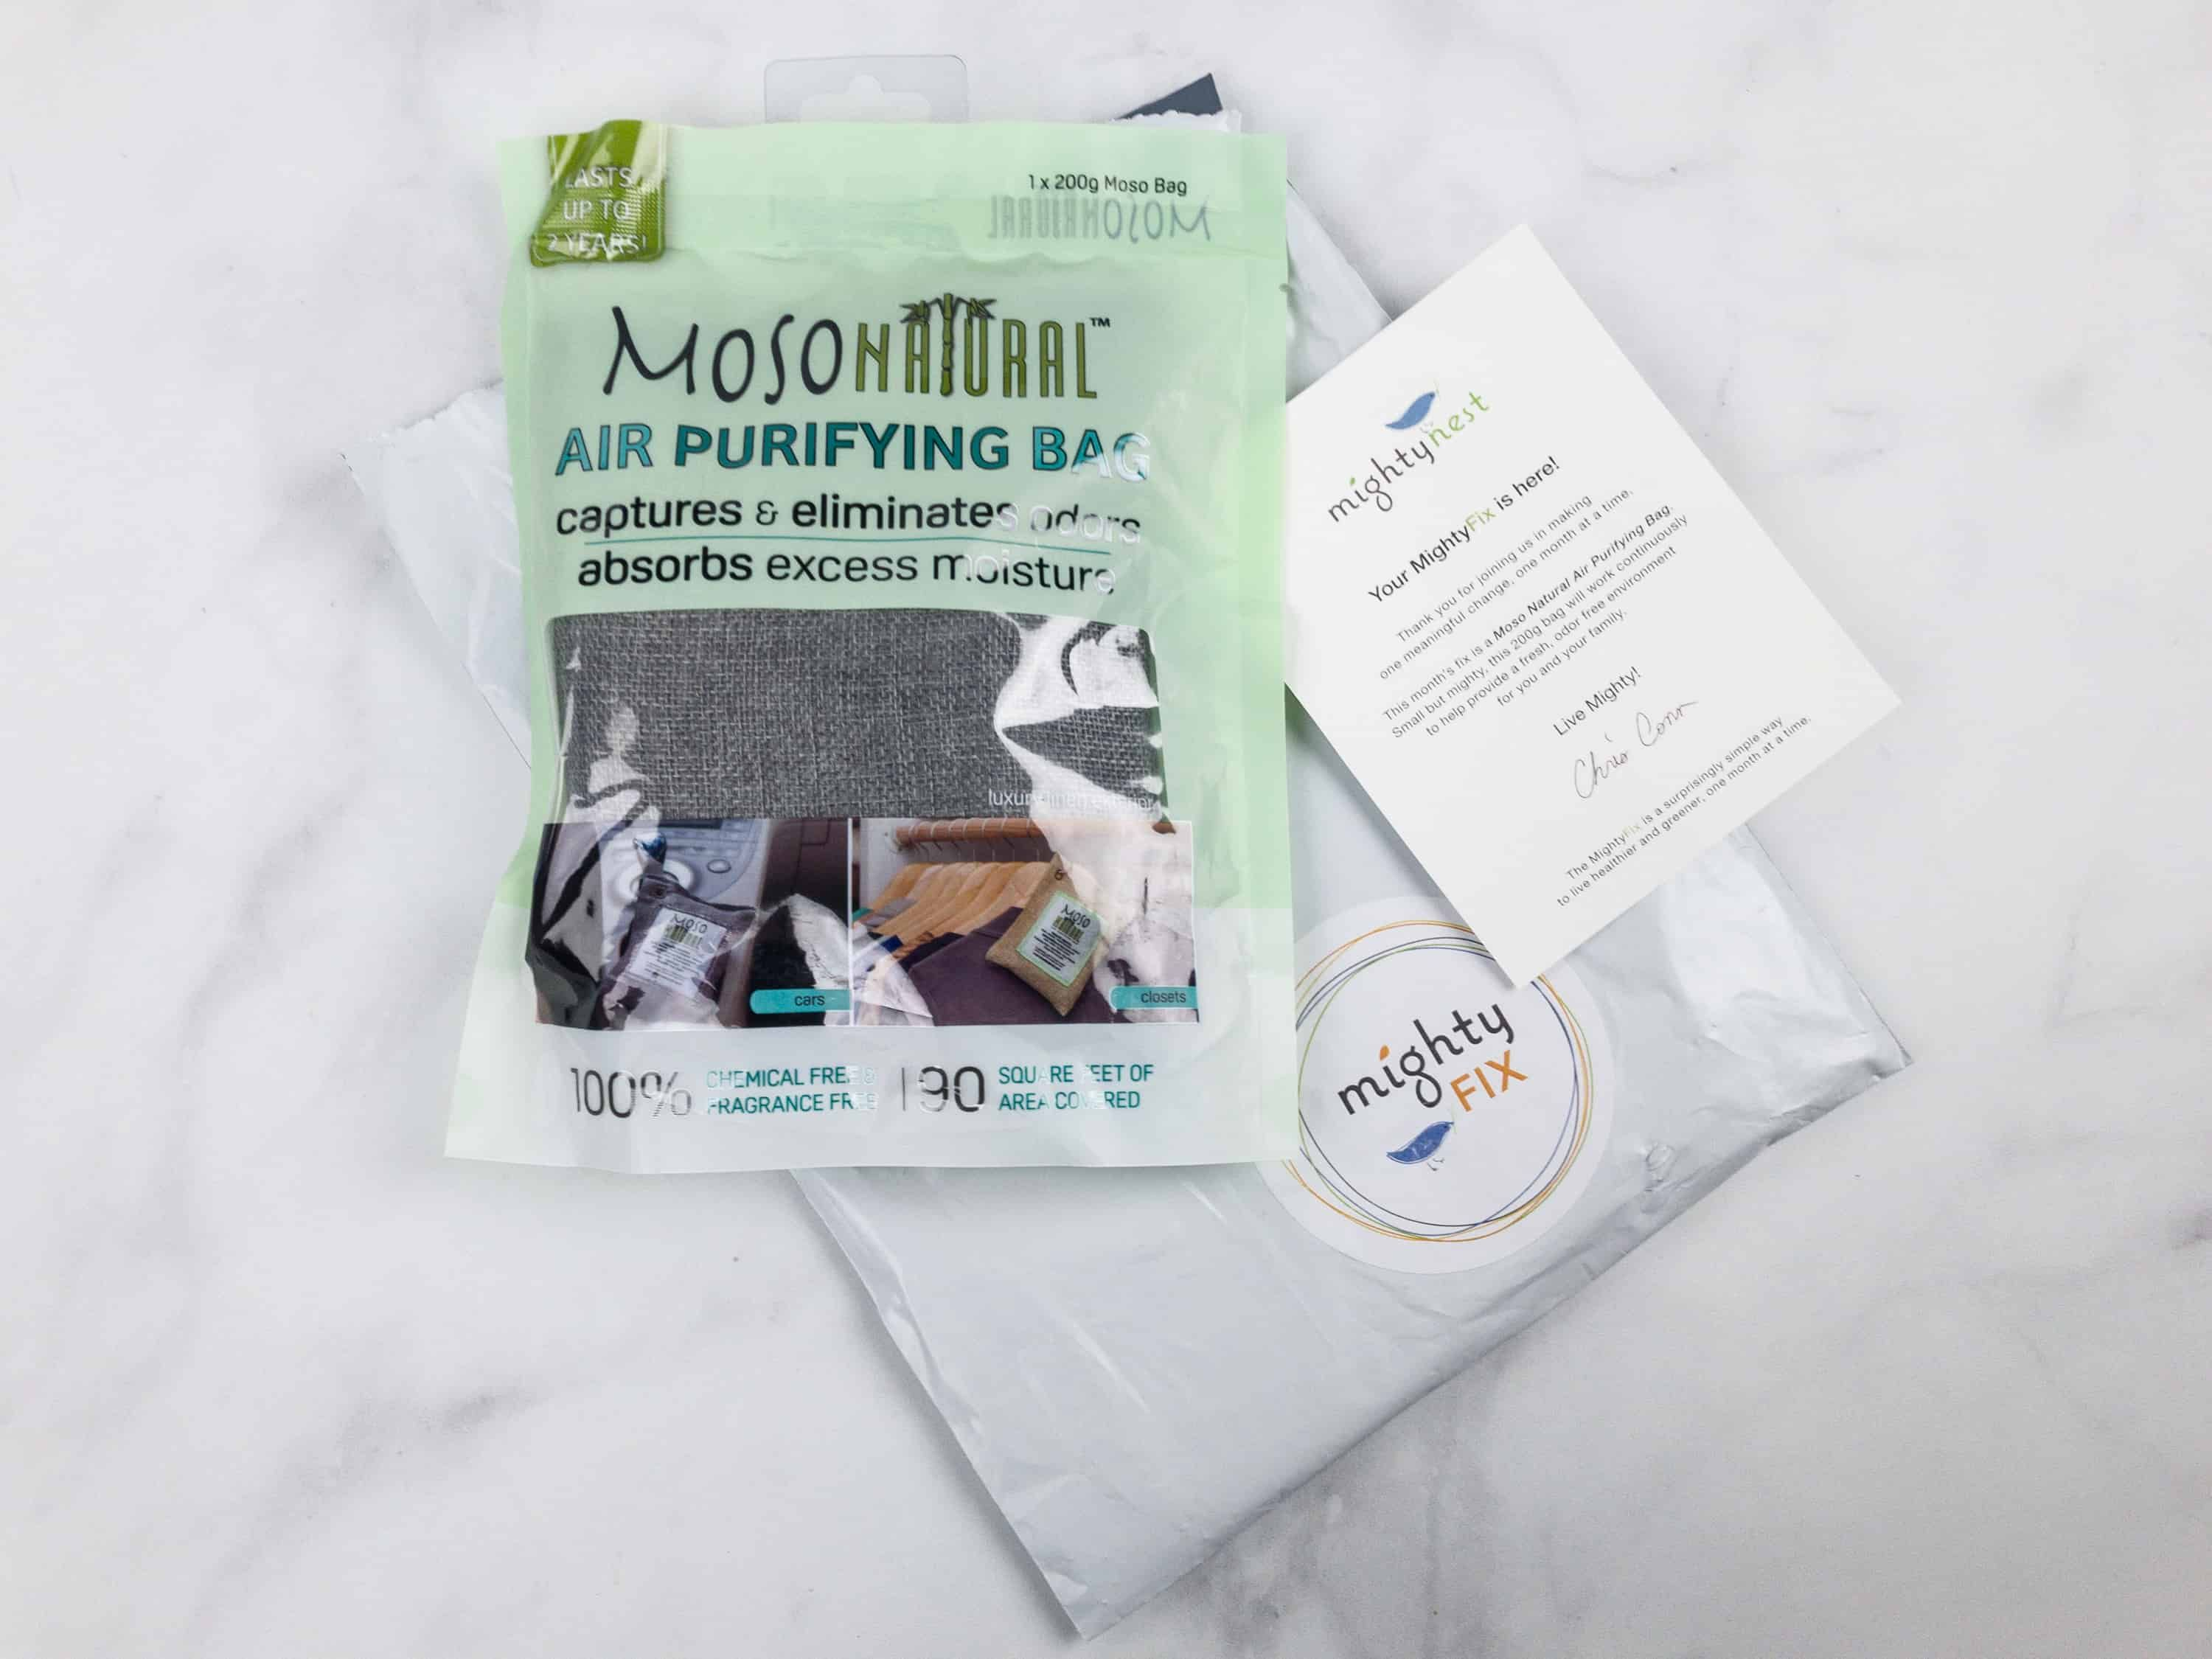 Mighty Fix Subscription boxes, Coupons, Air purifier